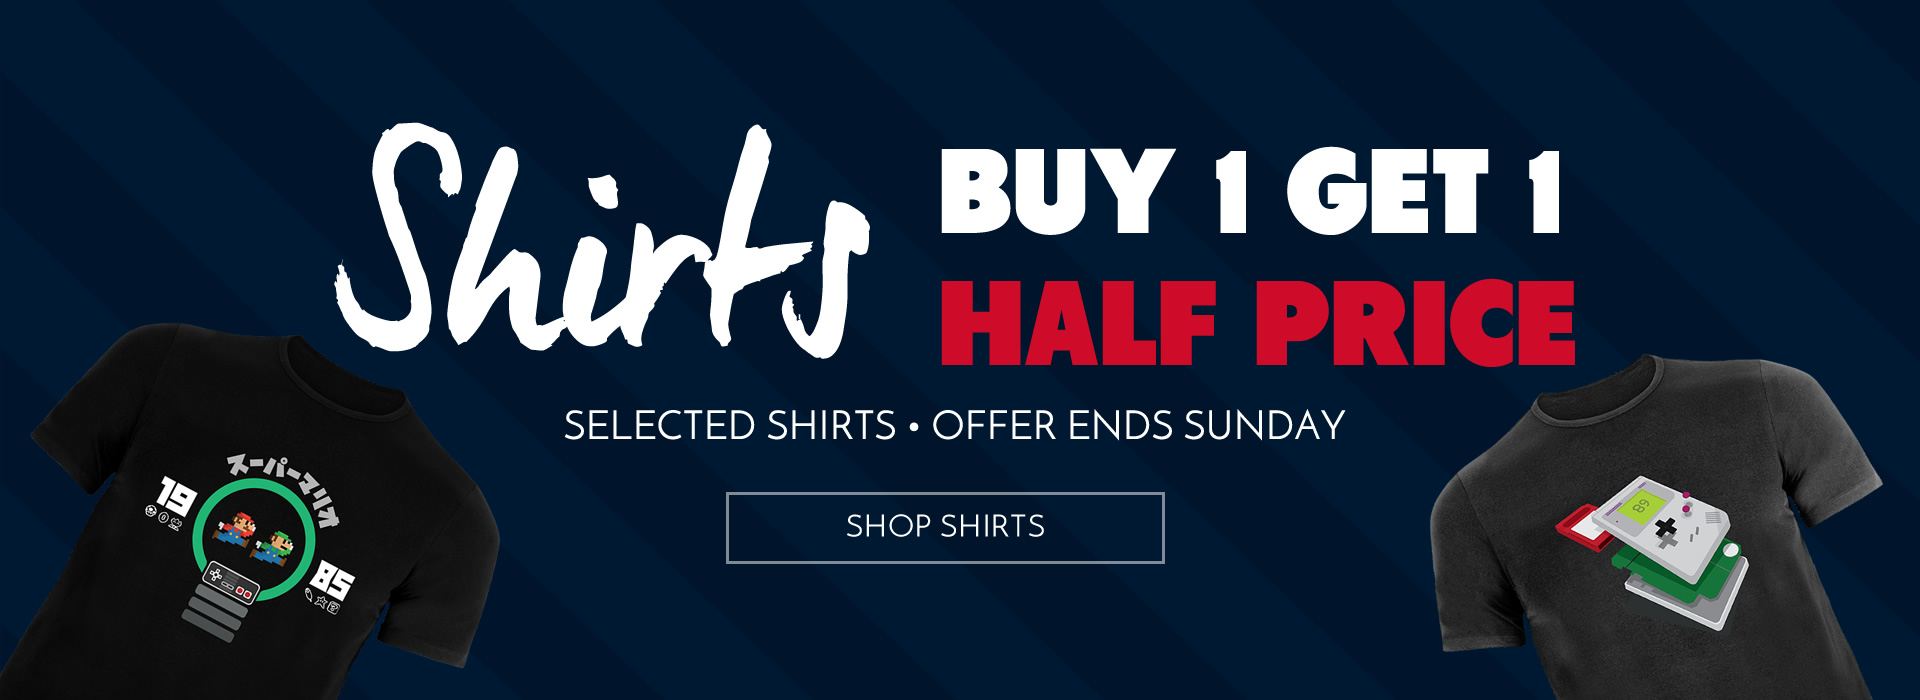 Buy 1 Get 1 Half Price - Selected Shirts!